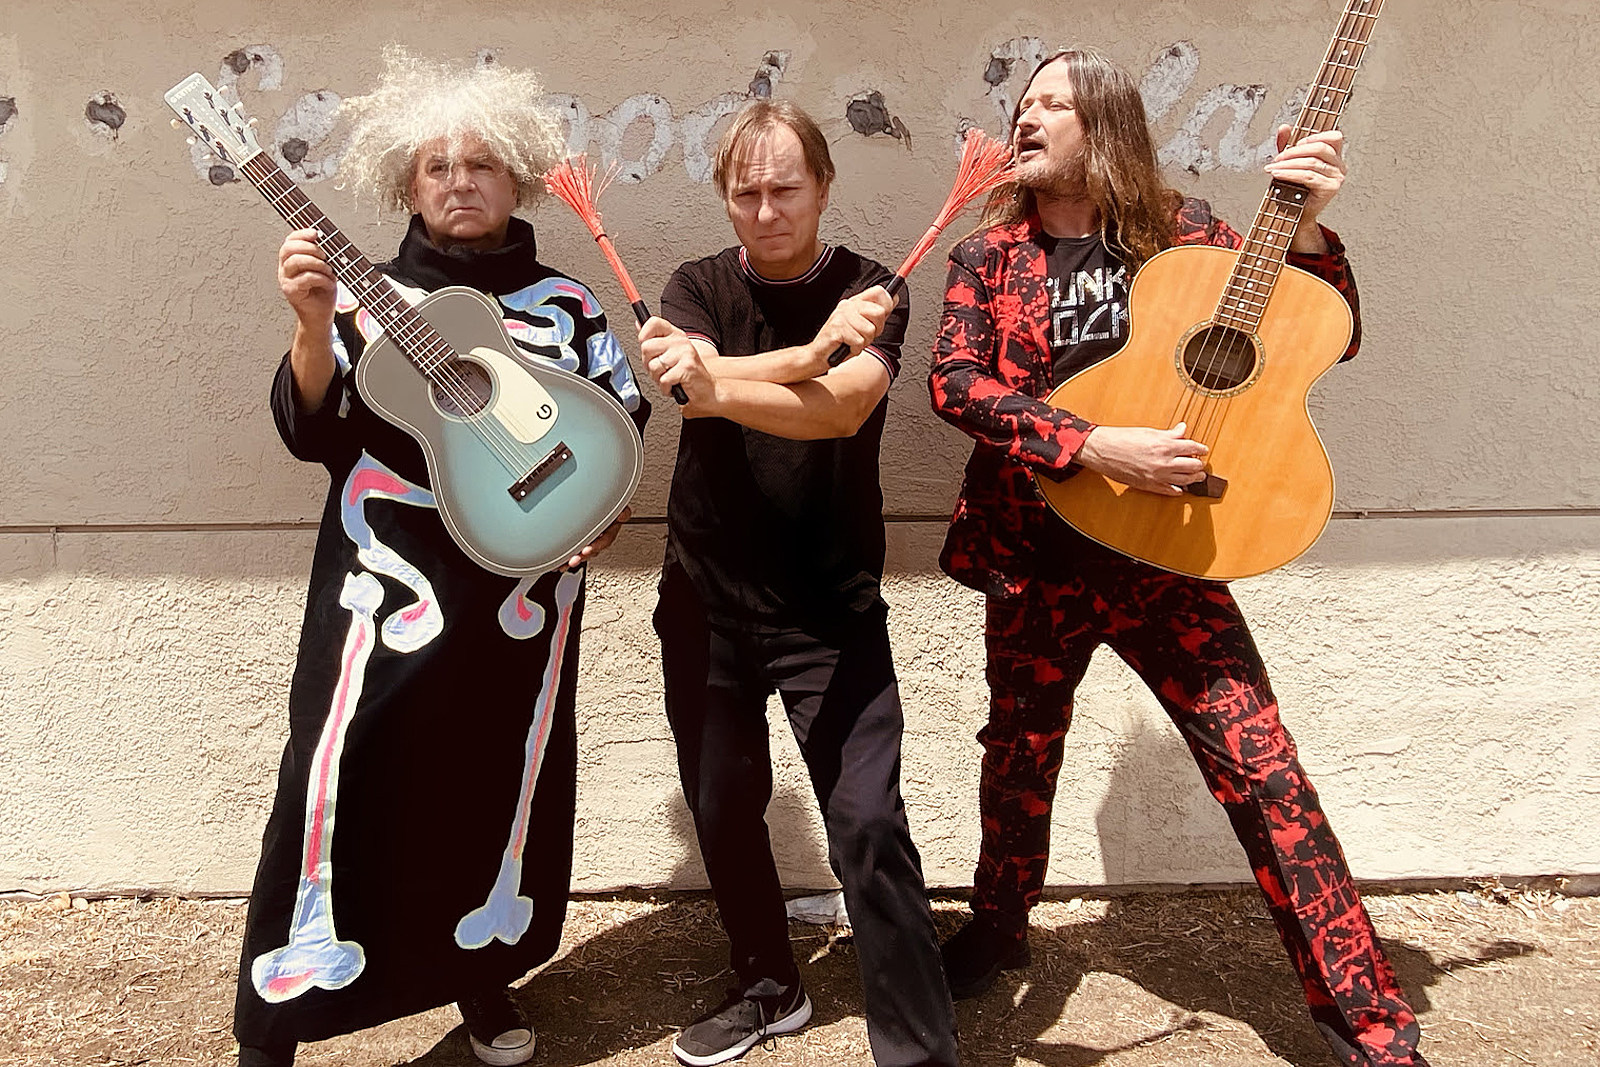 Melvins Cover the Rolling Stones' 'Sway': Exclusive Premiere